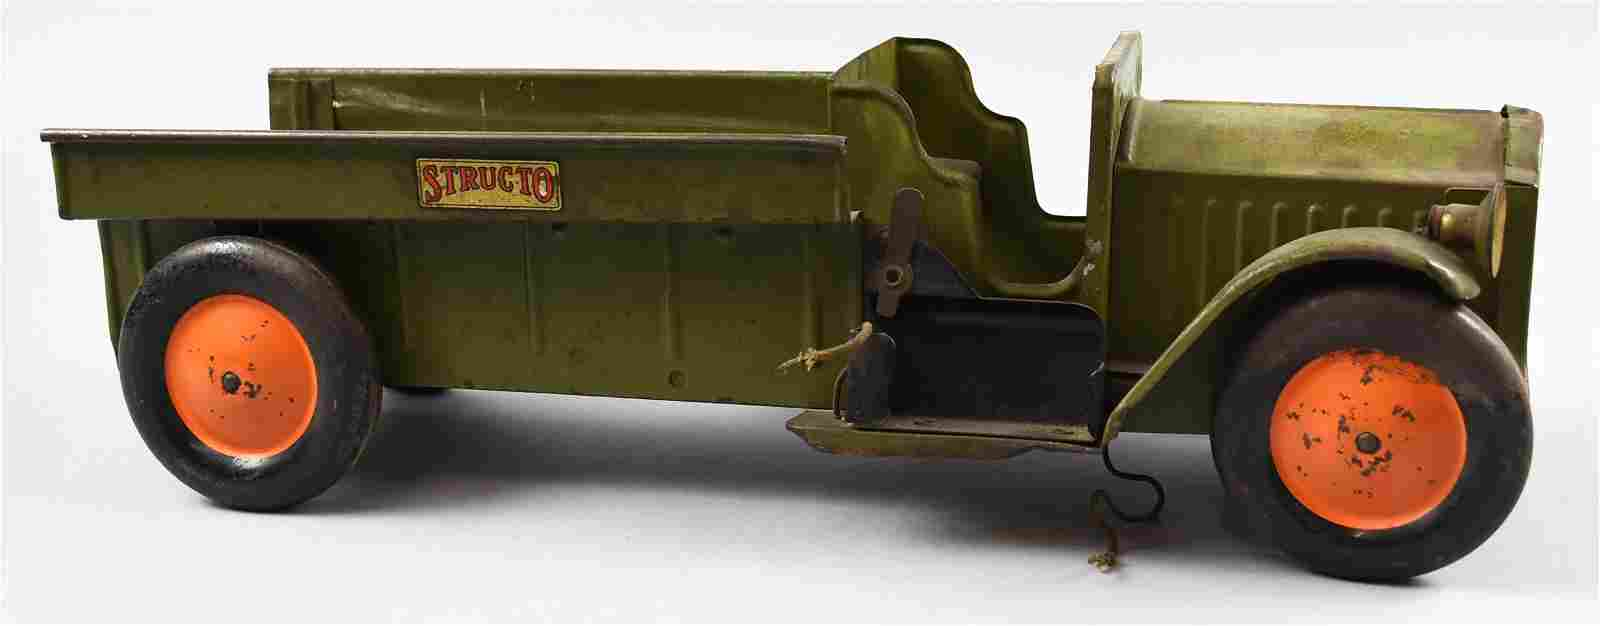 c1928 Structo Steel Army Truck